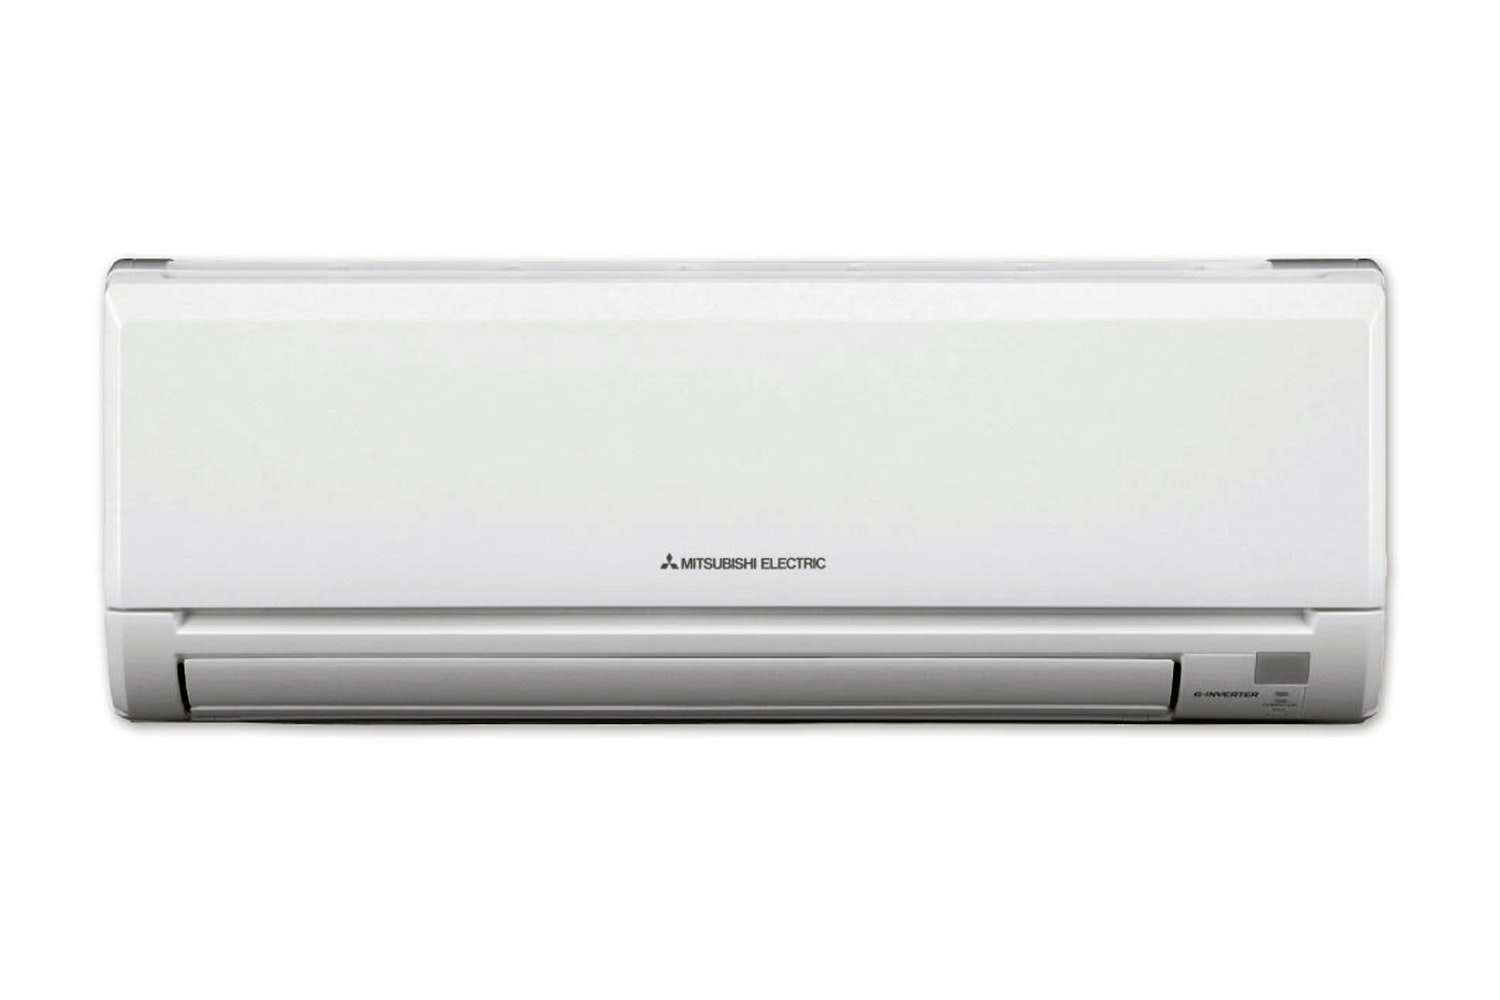 Mitsubishi Electric Classic GE35 Heat Pump / Air Conditioner | Harvey  Norman New Zealand